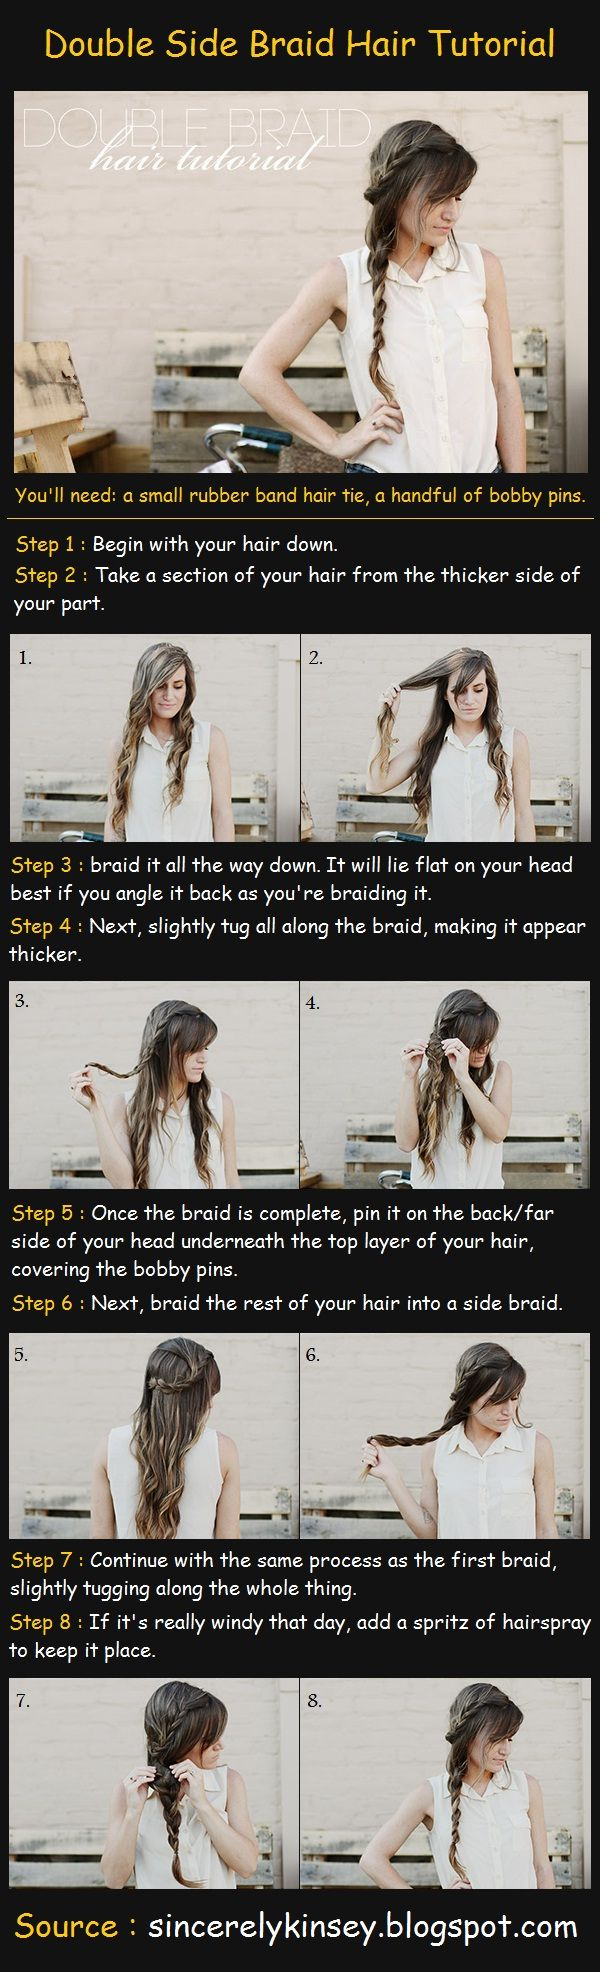 Double Side Braid Hair Tutorial: Braids Tutorials, Beautiful Tutorials, Long Hair, Longer Hair, Double Braids, Hair Style, Double Side, Side Braids, Braids Hair Tutorials